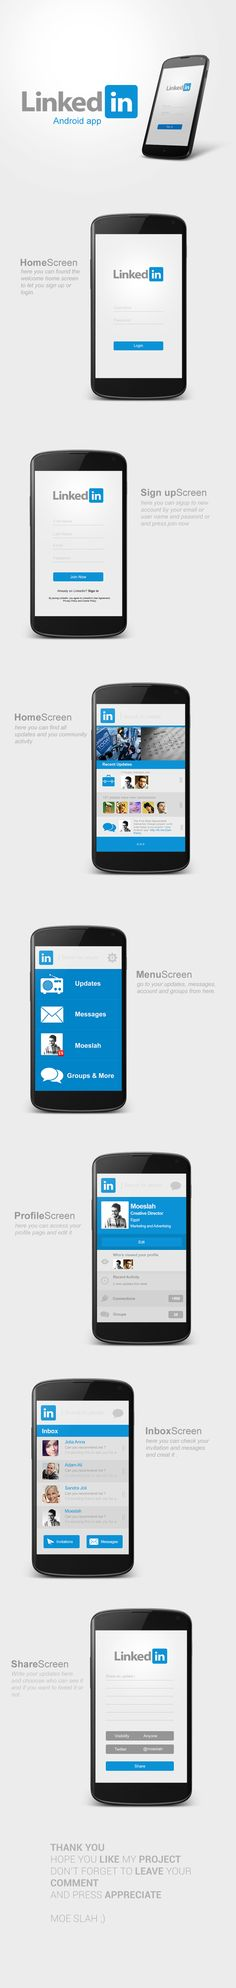 LinkedIn Android App Re-design by Moe slah, via Behance